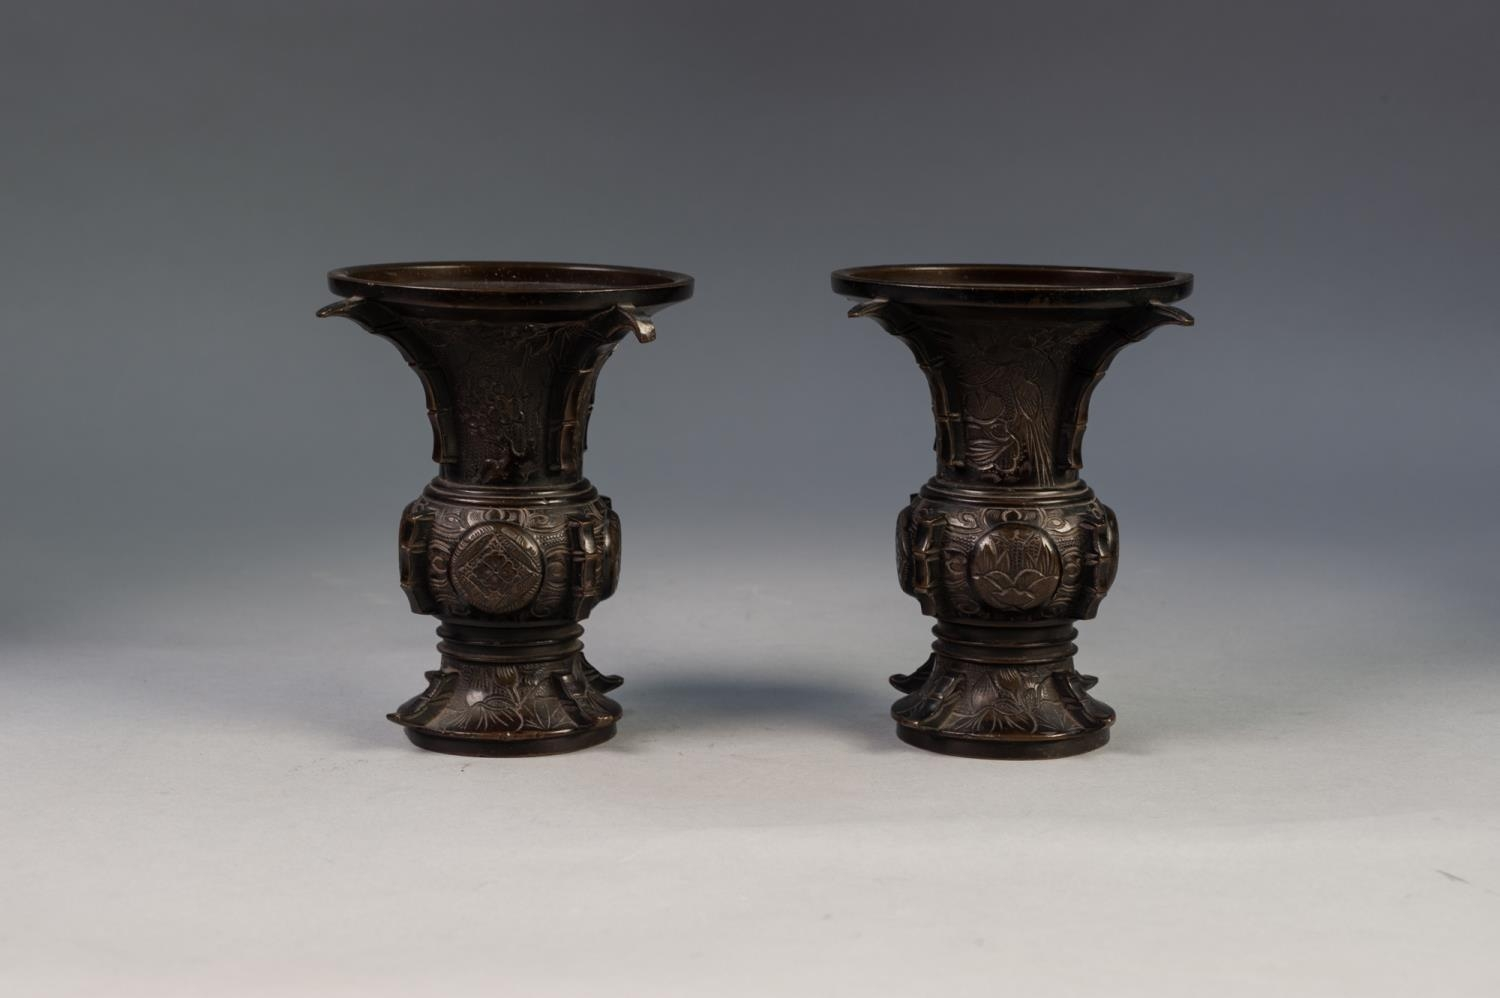 PAIR OF JAPANESE LATE MEIJI PERIOD BRONZE VASES, each of flared form, engraved with panels - Image 3 of 4